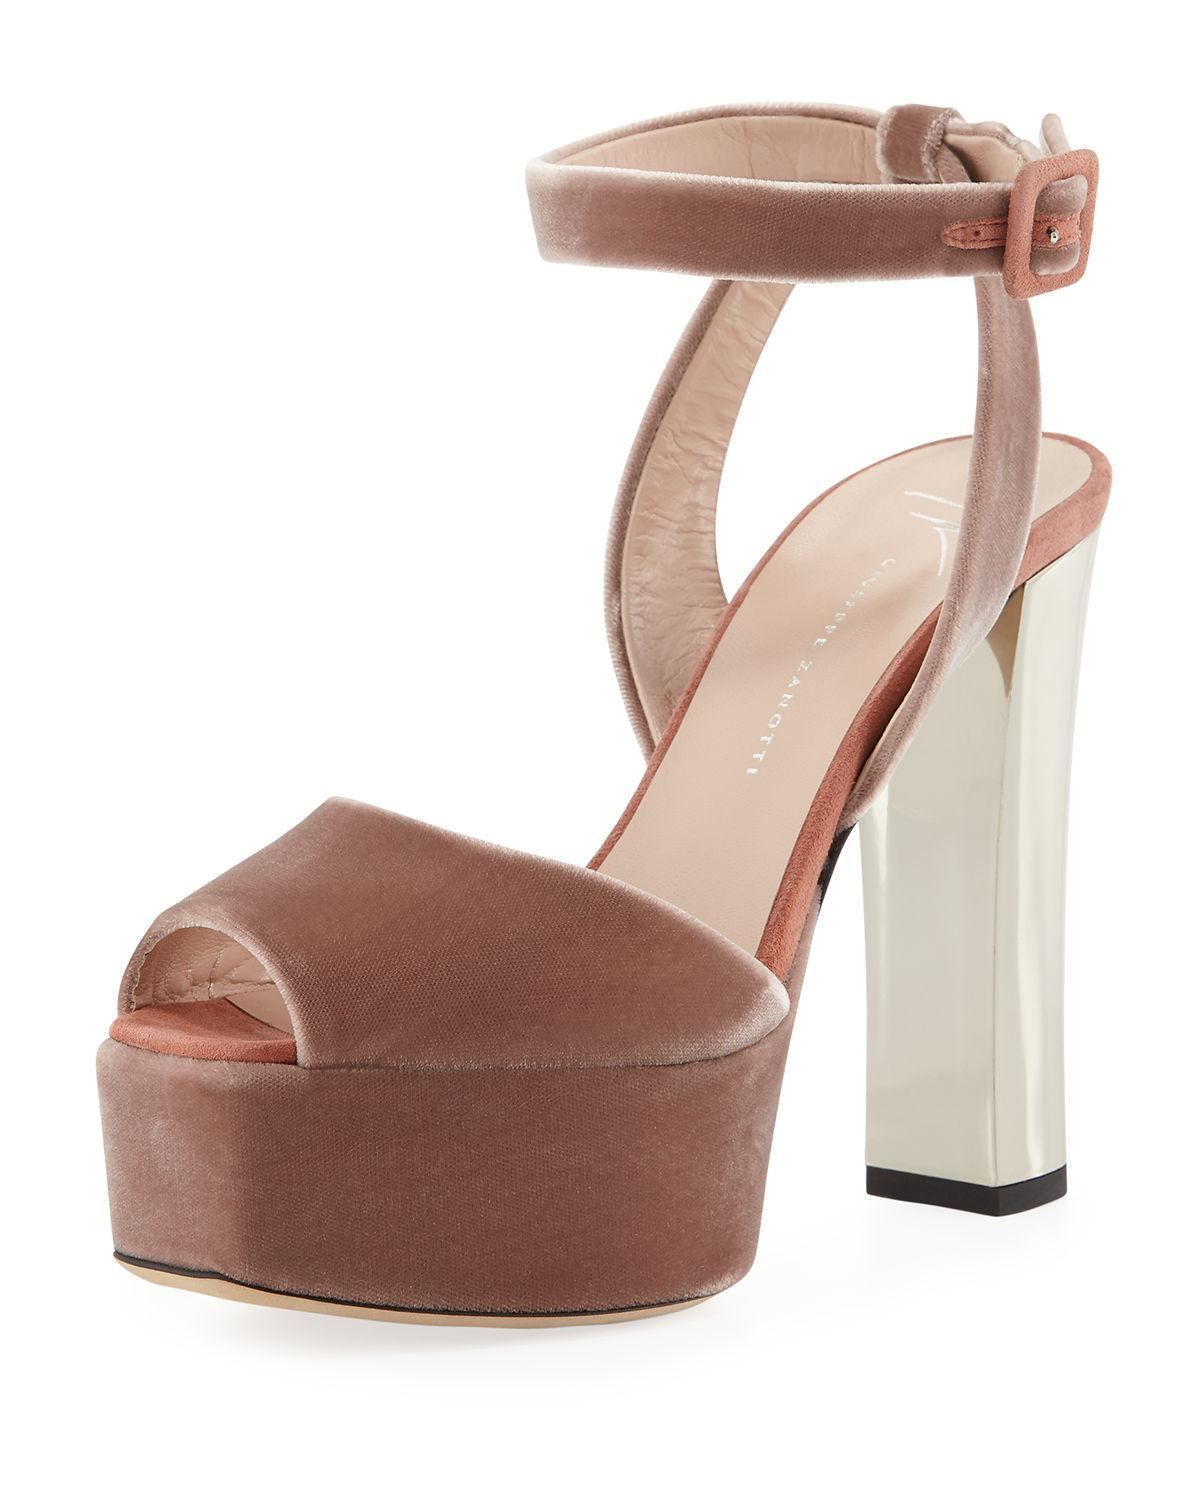 d720288a74b Giuseppe Zanotti Denim Platform Ankle-Strap Sandals In Blush